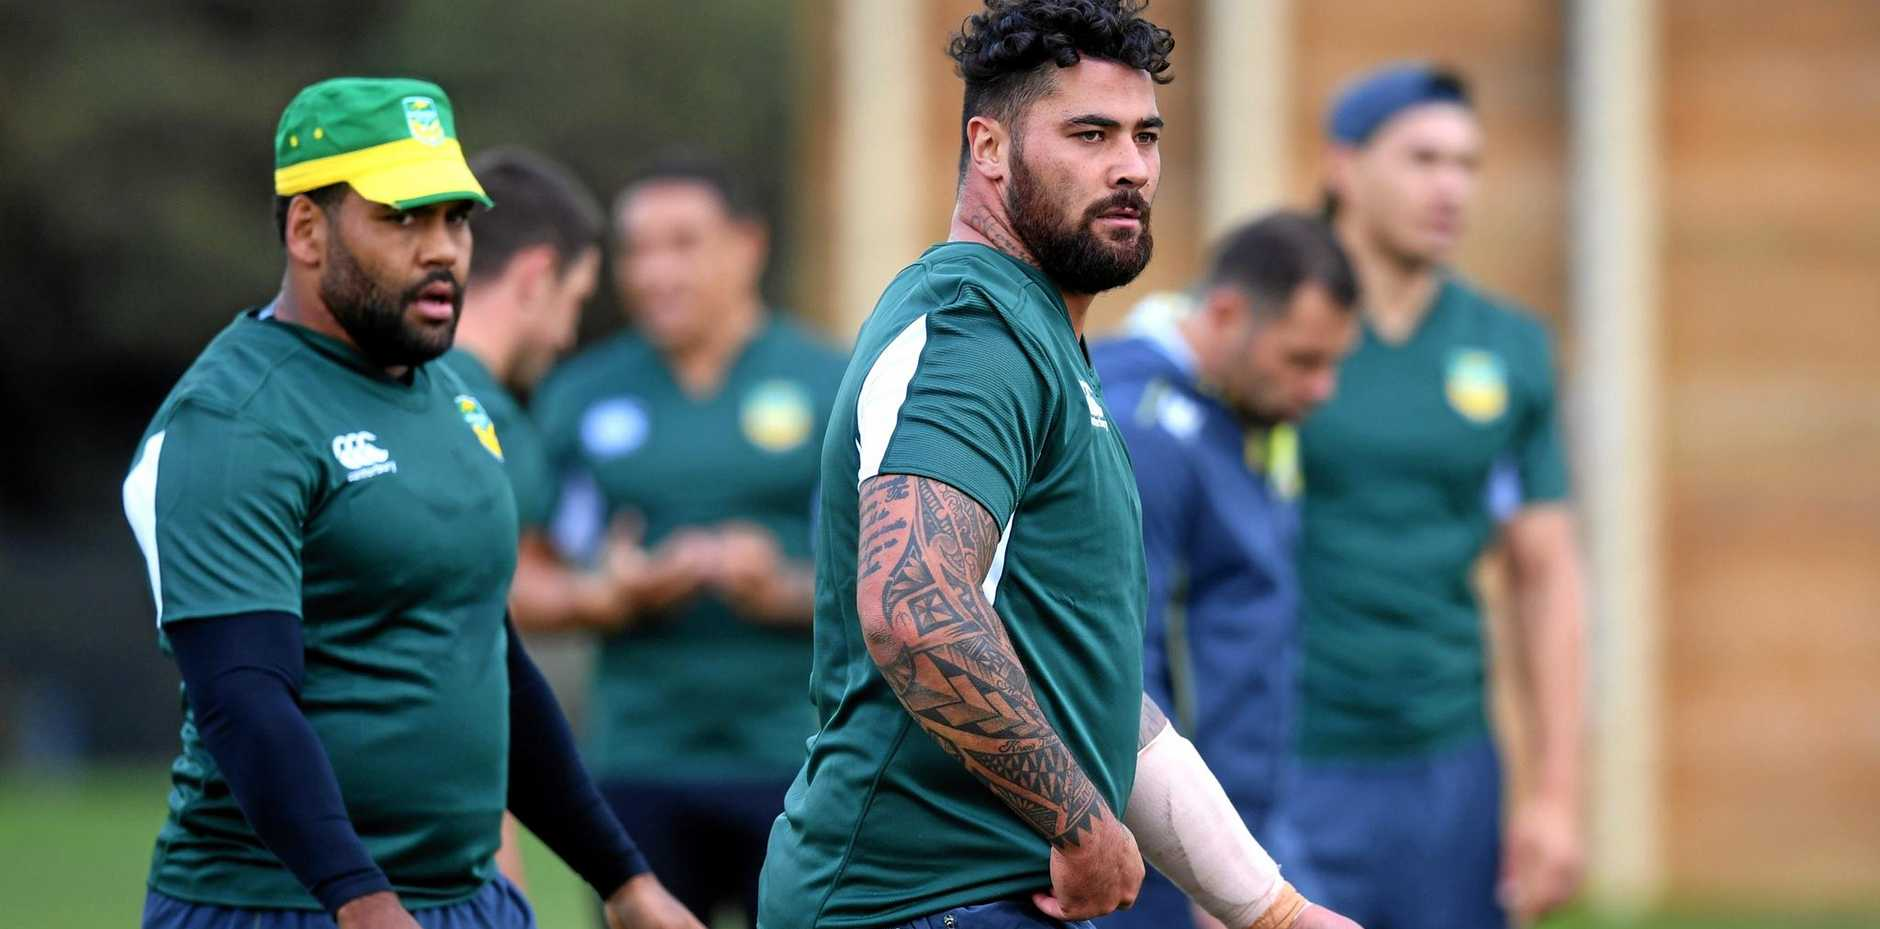 Andrew Fifita during a Kangaroos training session at the AIS in Canberra